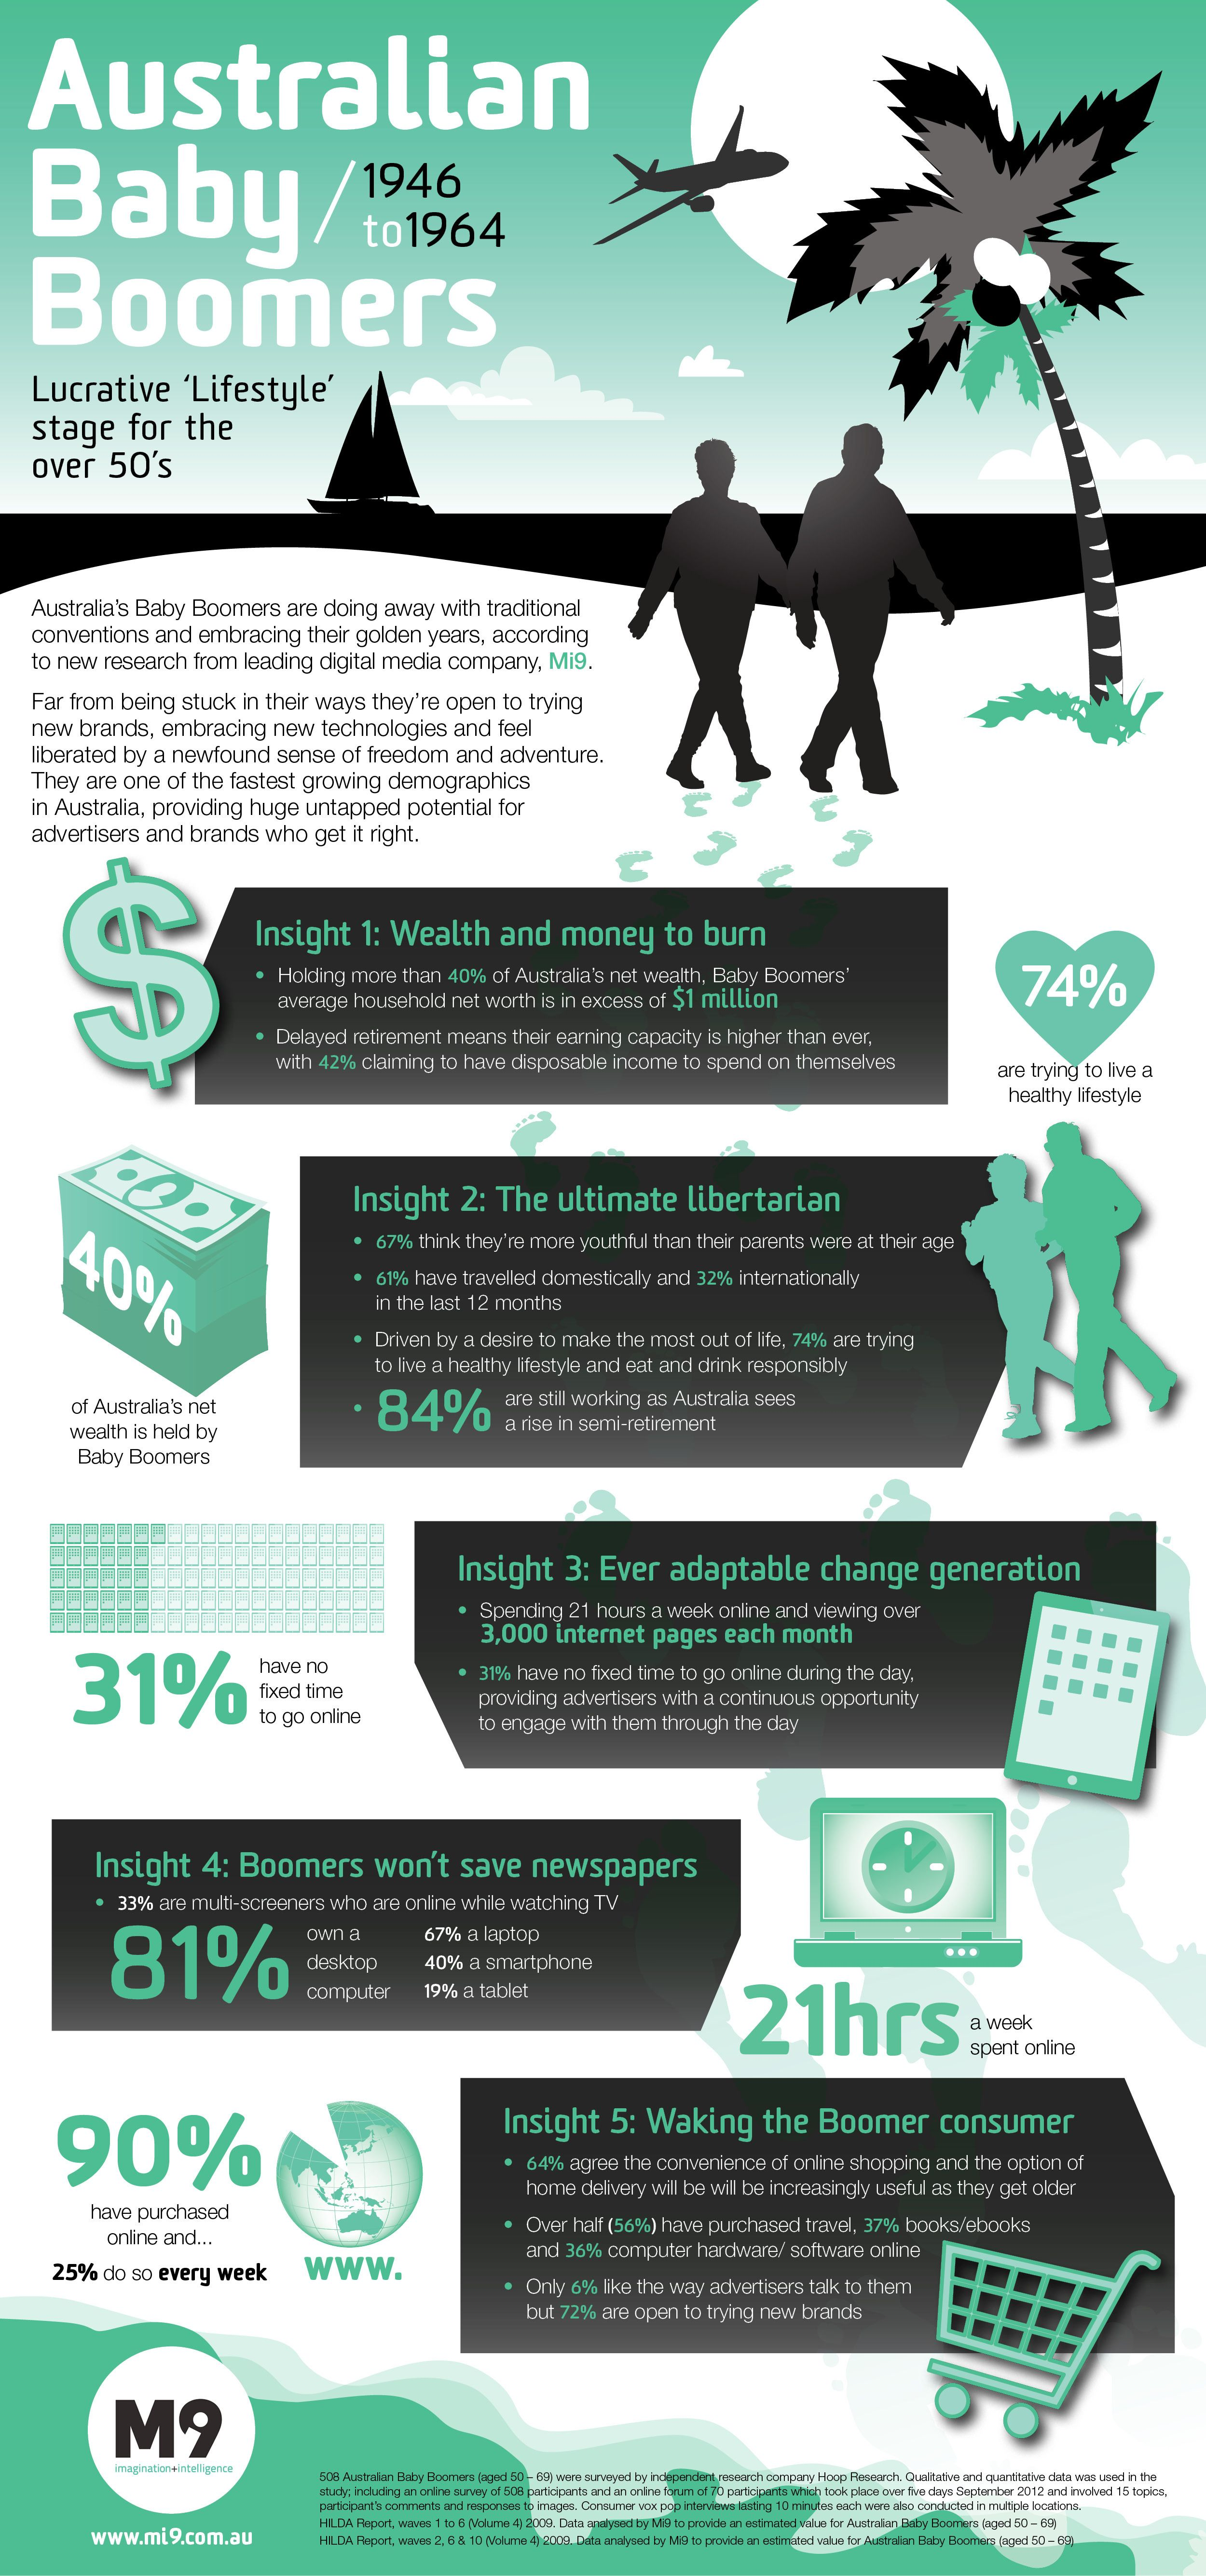 17 best ideas about Baby Boomers Characteristics on Pinterest ...